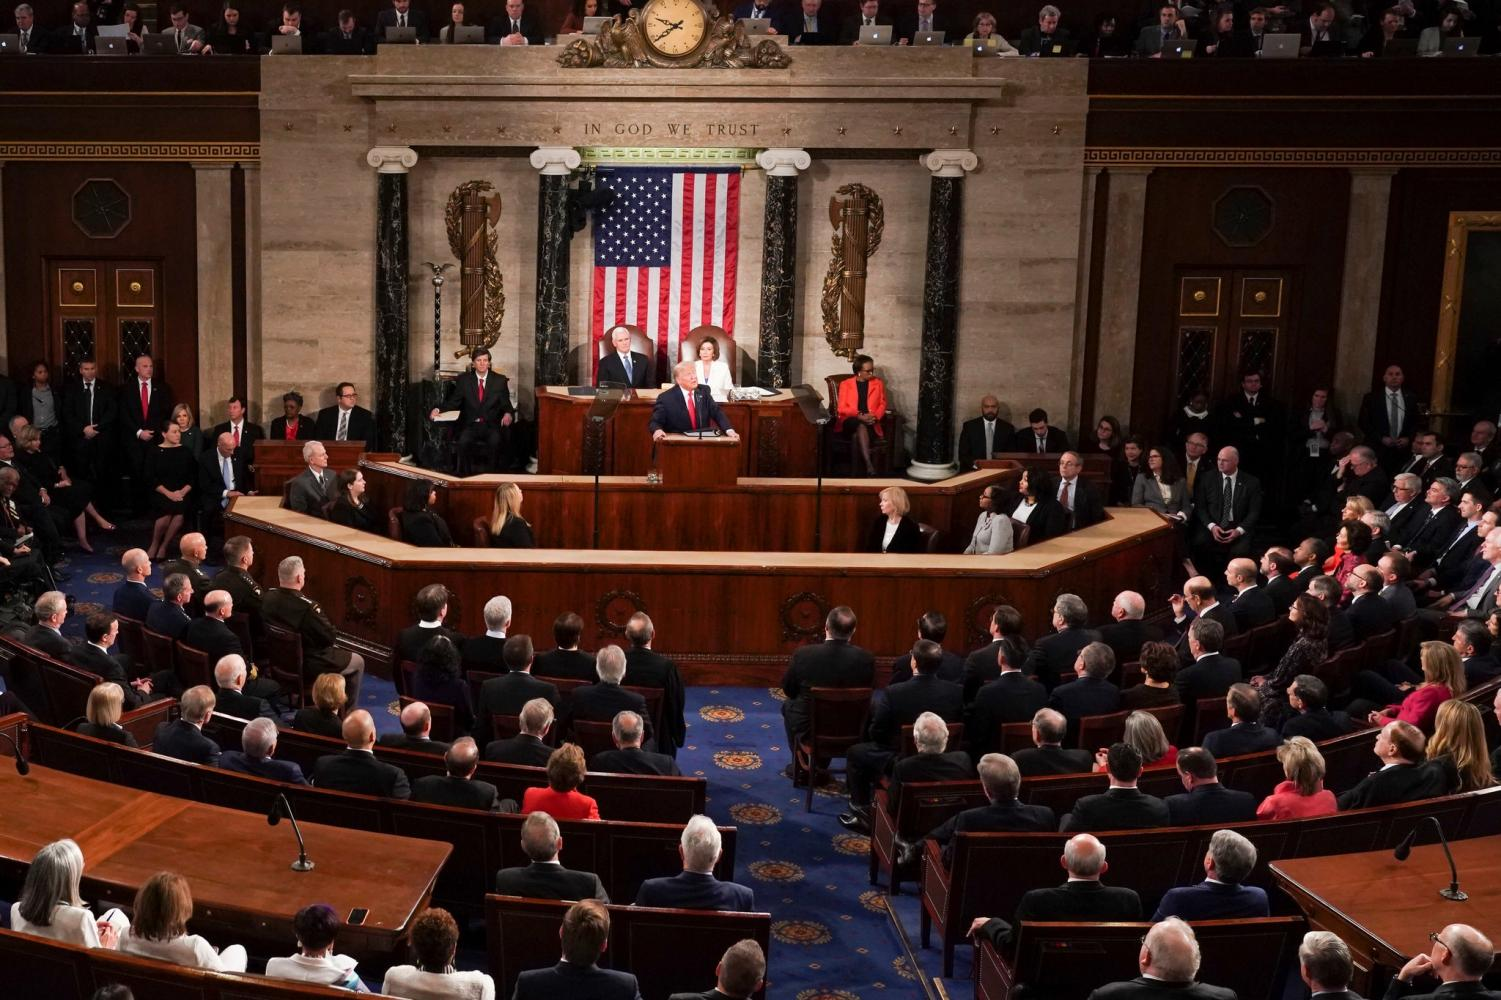 President Trump lauded economic prosperity, attacked Democrats, awarded a Medal of Freedom, and addressed upcoming legislation in the final address of his first term.